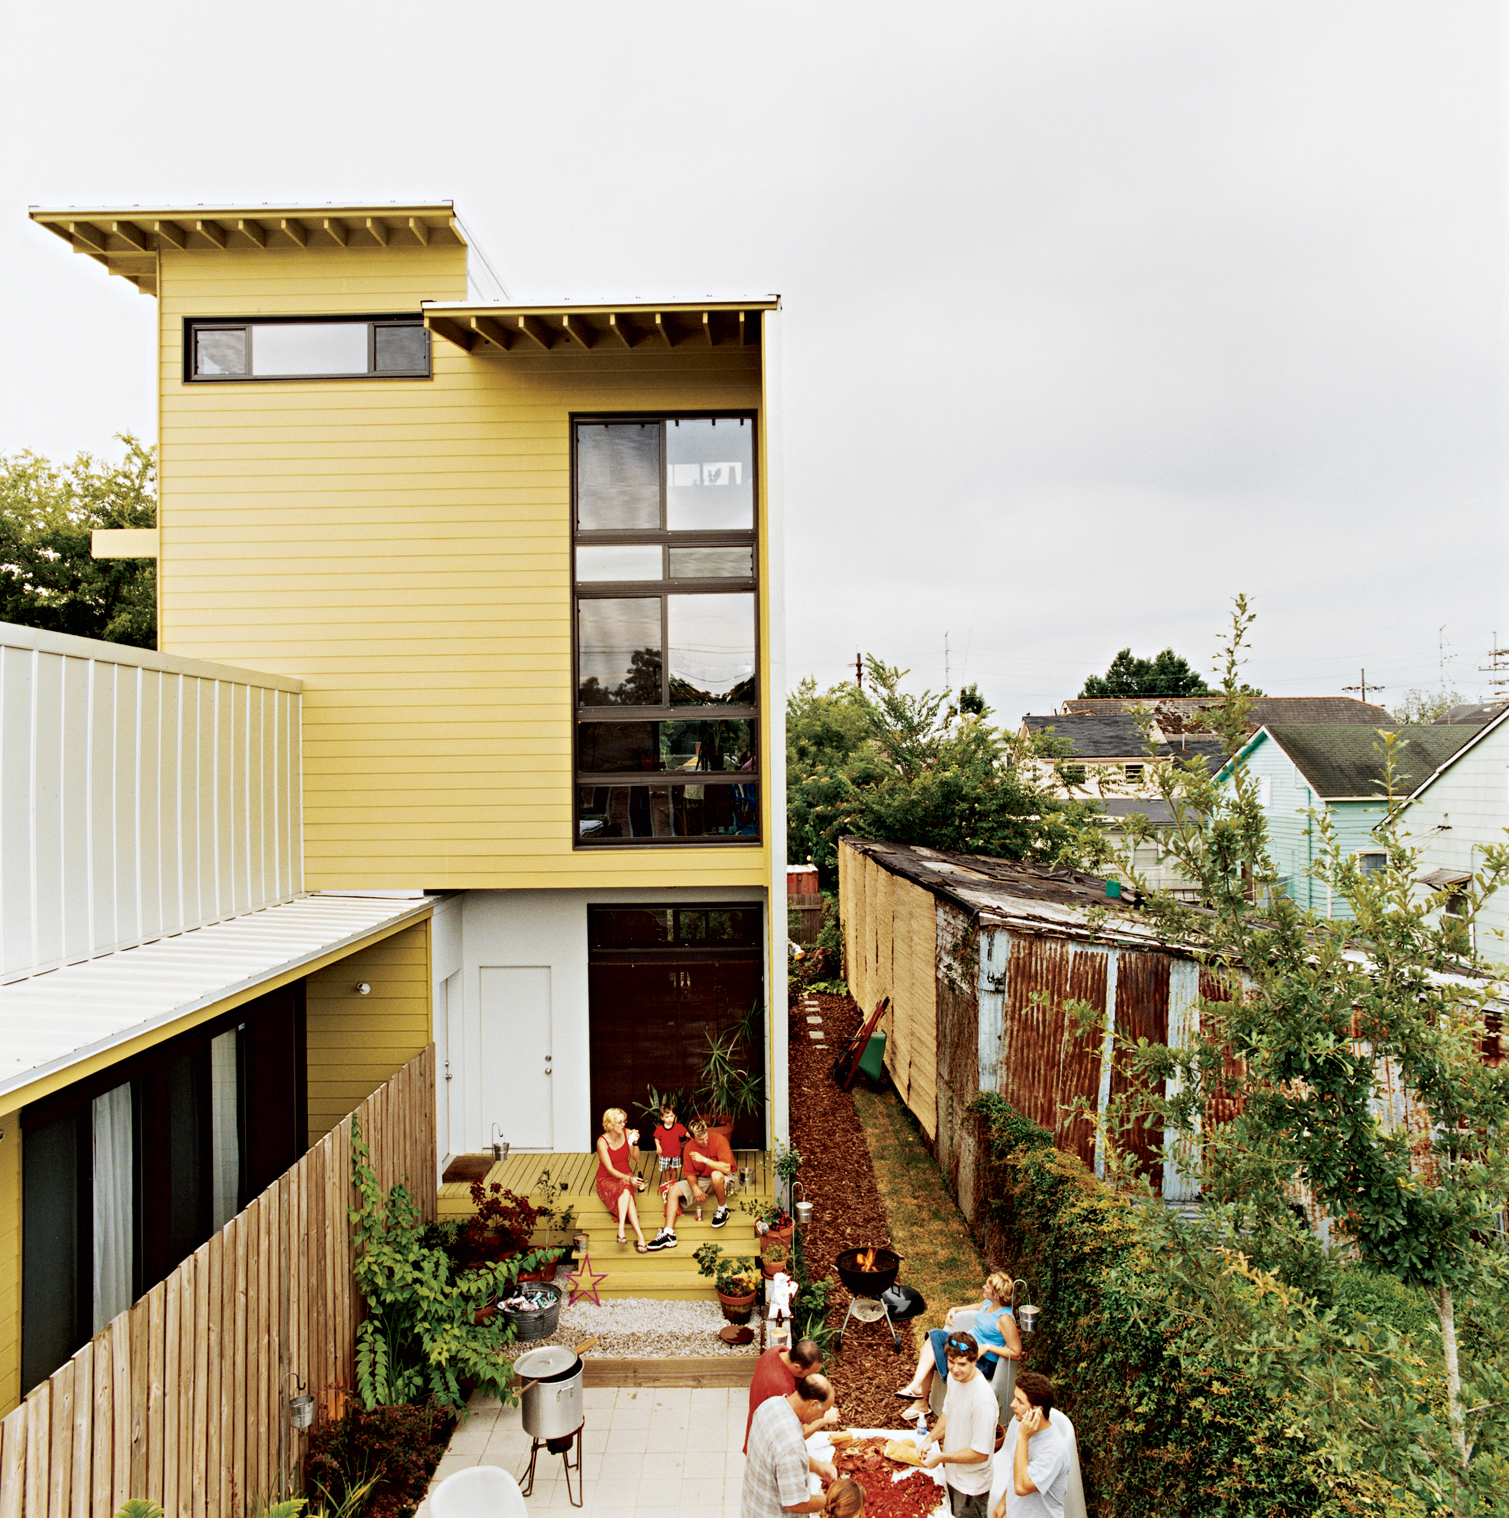 Familiar building elements applied in unexpected ways and a strict rectilinear palette help unify the two building forms. The scale is just right for creating cozy outdoor rooms.